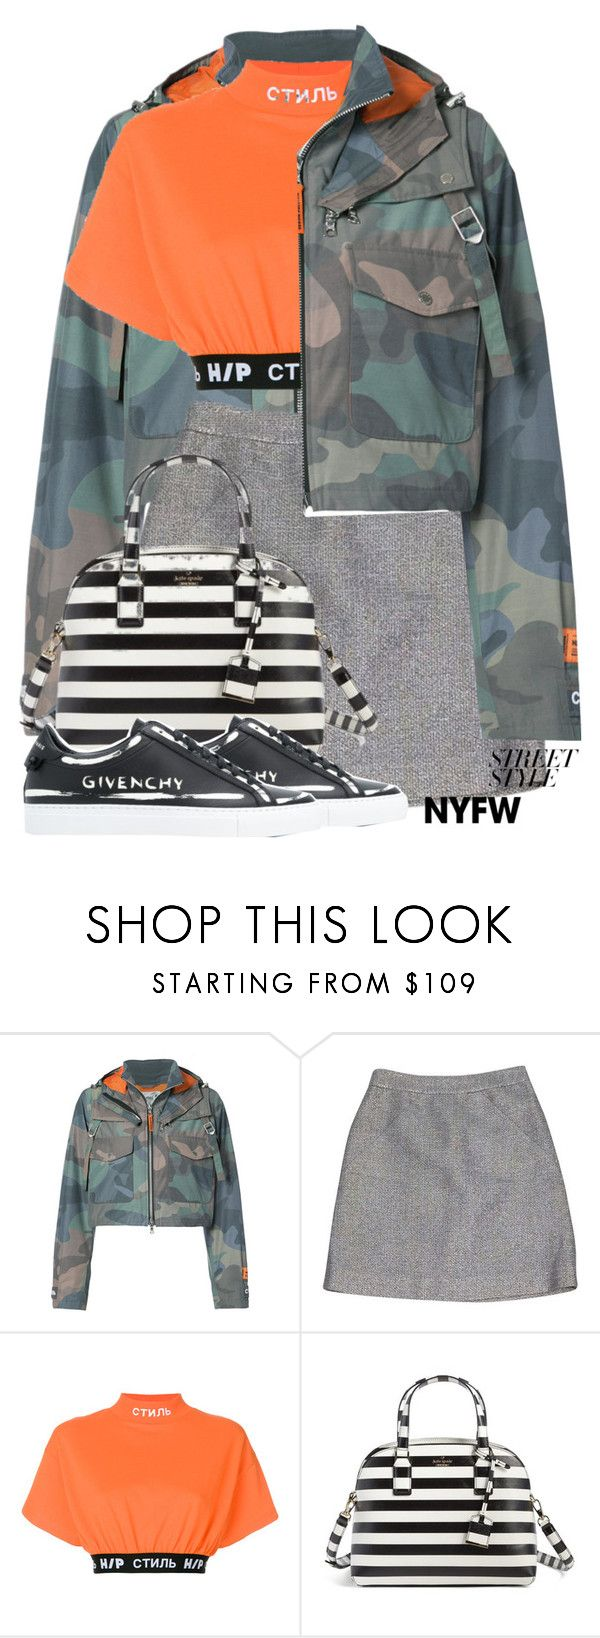 """you're my wonderwall"" by icedtealee ❤ liked on Polyvore featuring Heron Preston, Kate Spade, Givenchy, contestentry and nyfwstreetstyle"